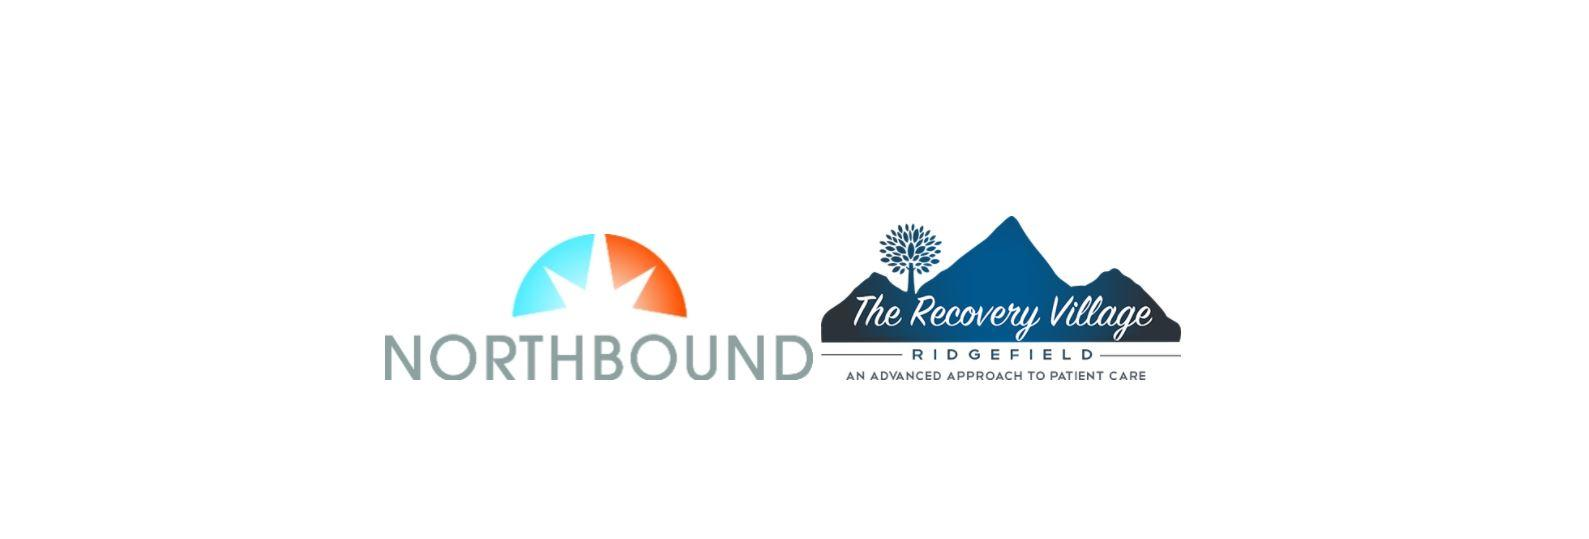 The Recovery Village Ridgefield - Networking